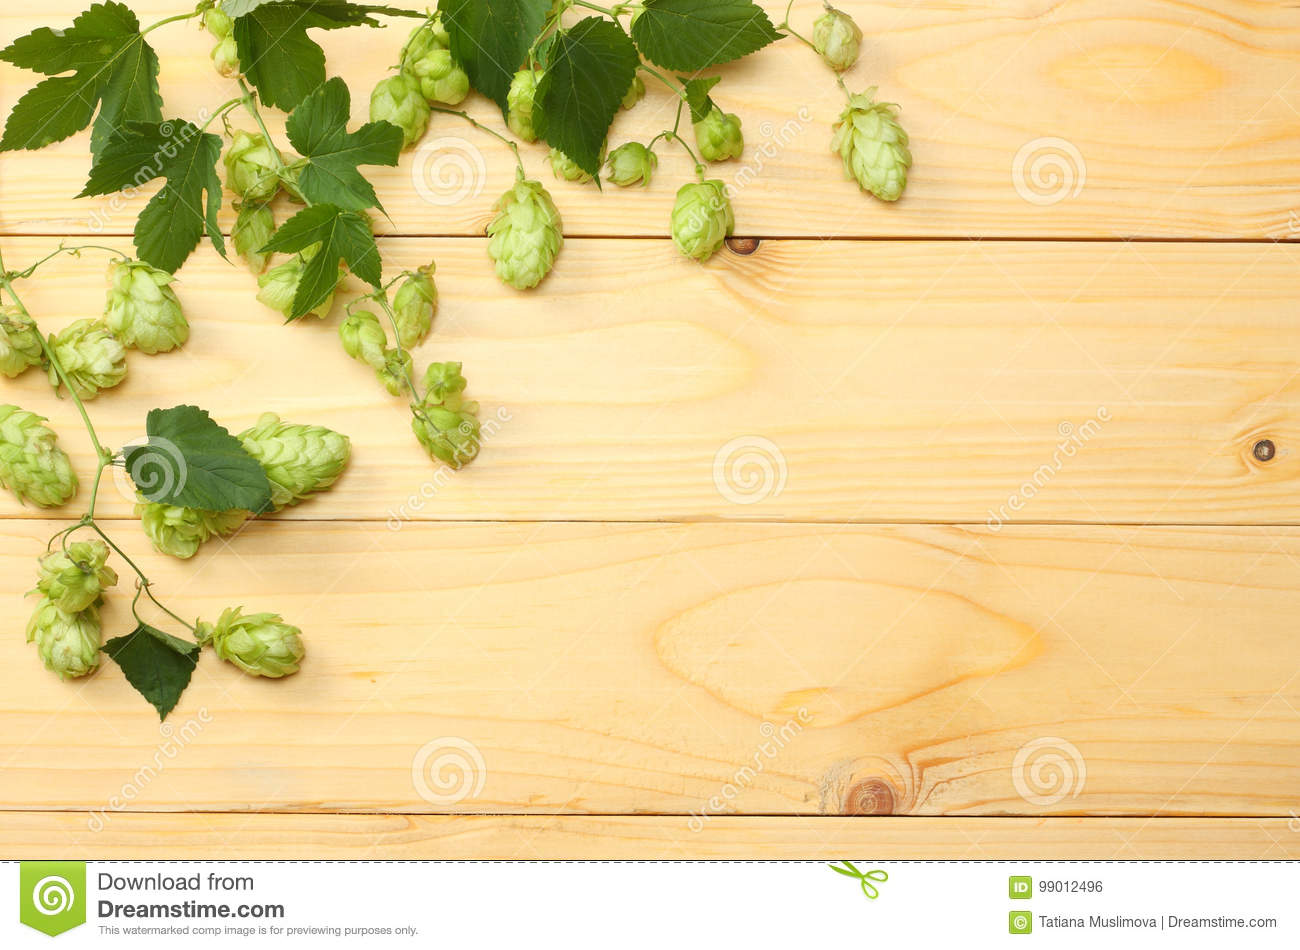 Beer brewing ingredients Hop on light wooden table. Beer brewery concept. Beer background. Top view with copy space